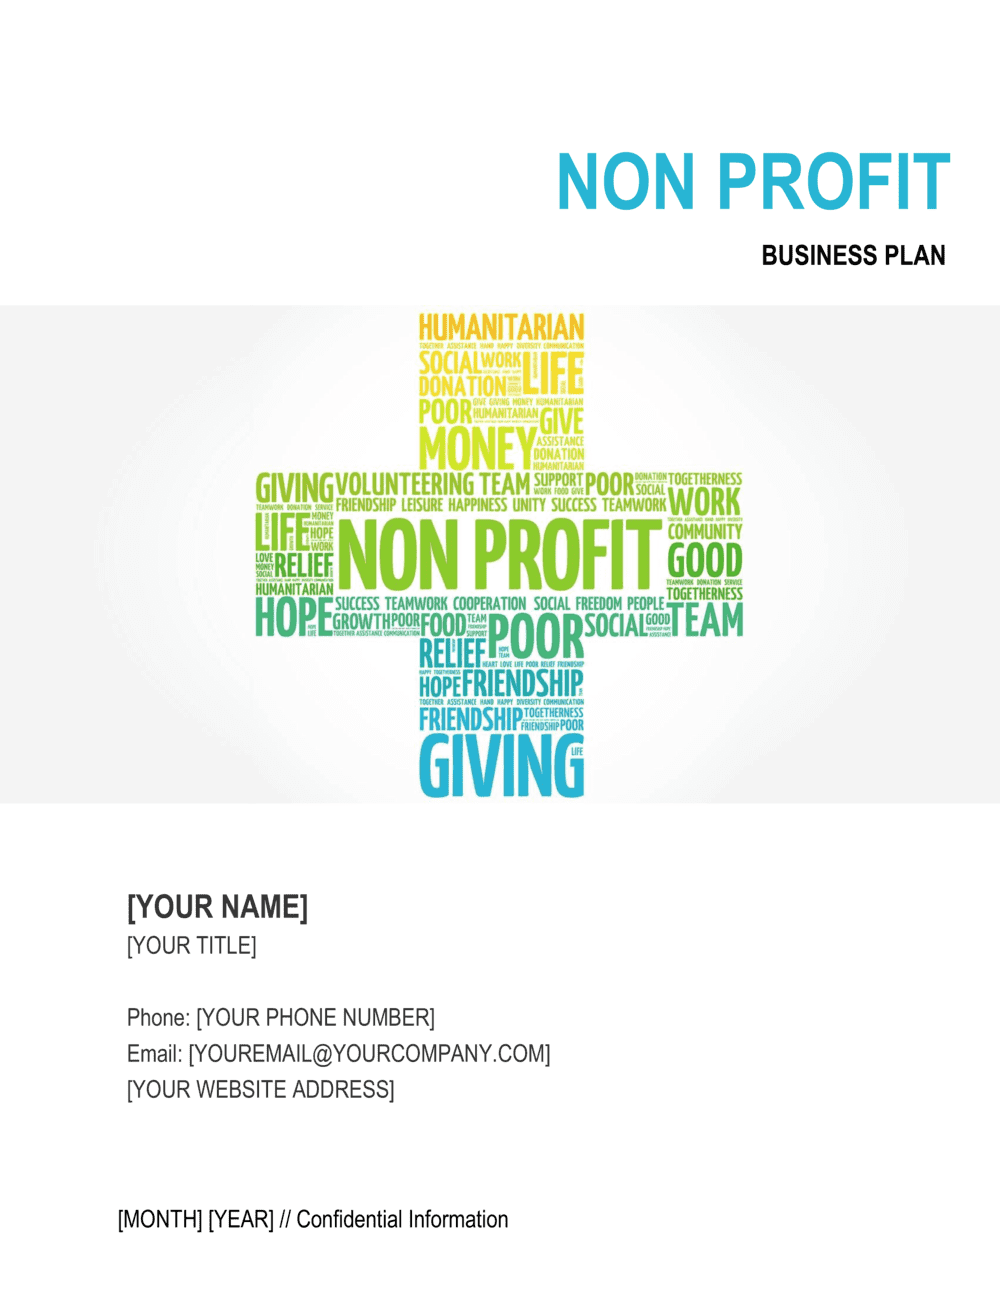 Business-in-a-Box's Non-profit Organization Business Plan Template